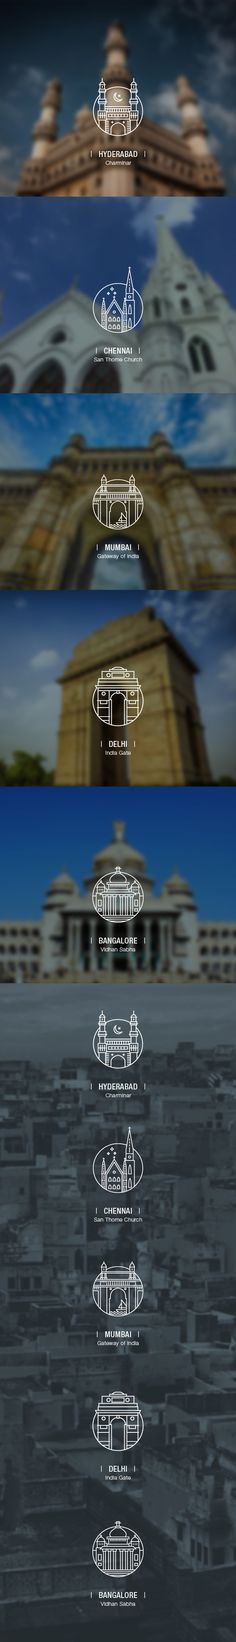 City Icons by Abhishek Chaudhary